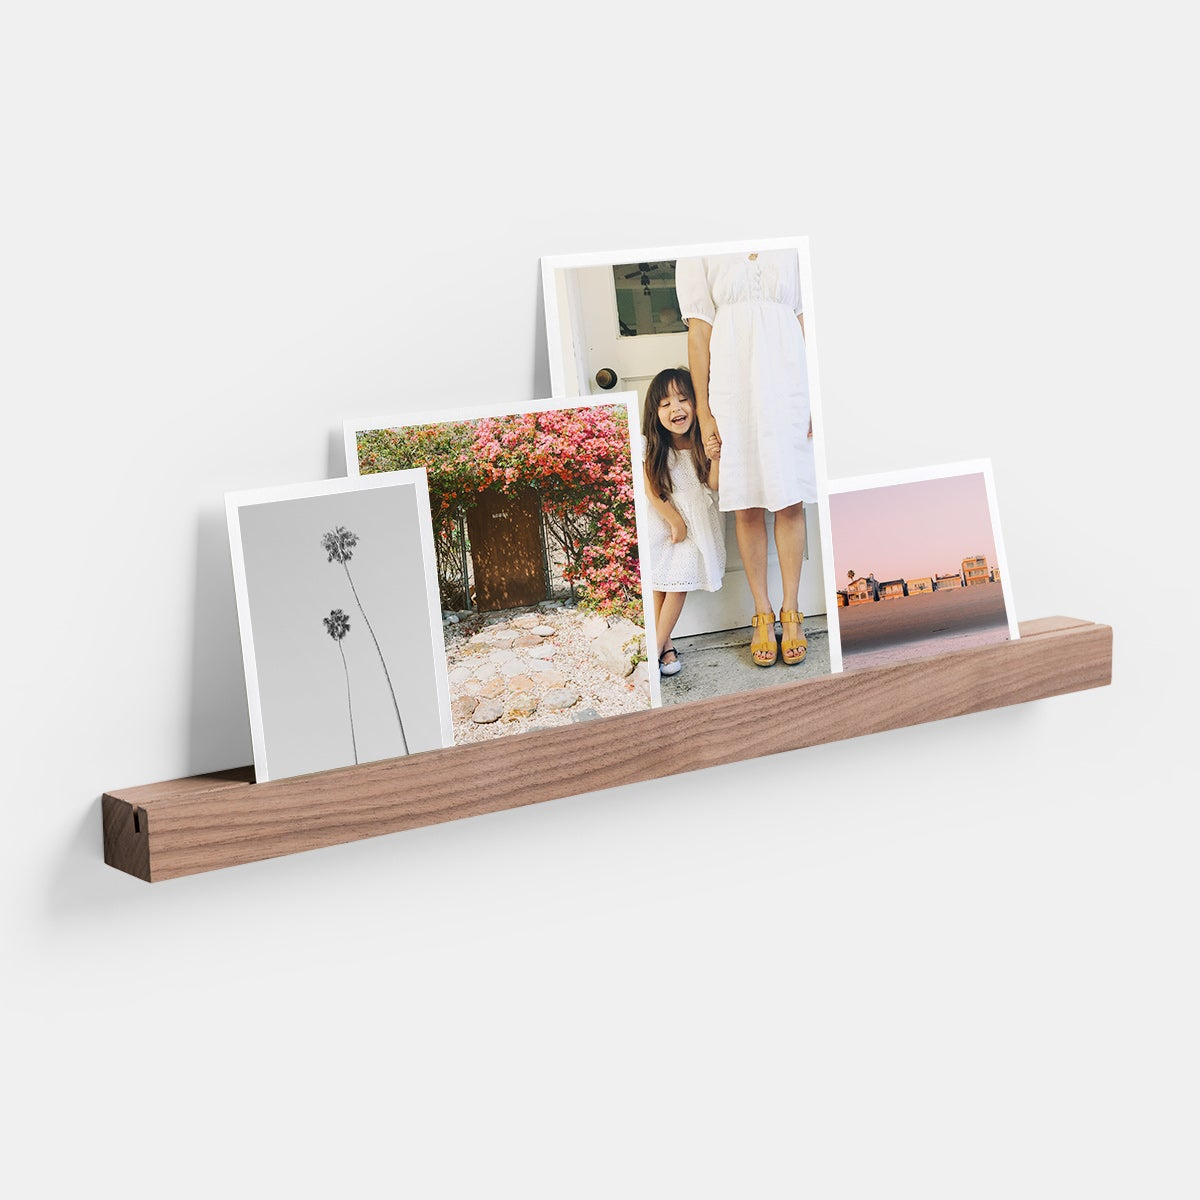 Image for Wooden Photo Ledge